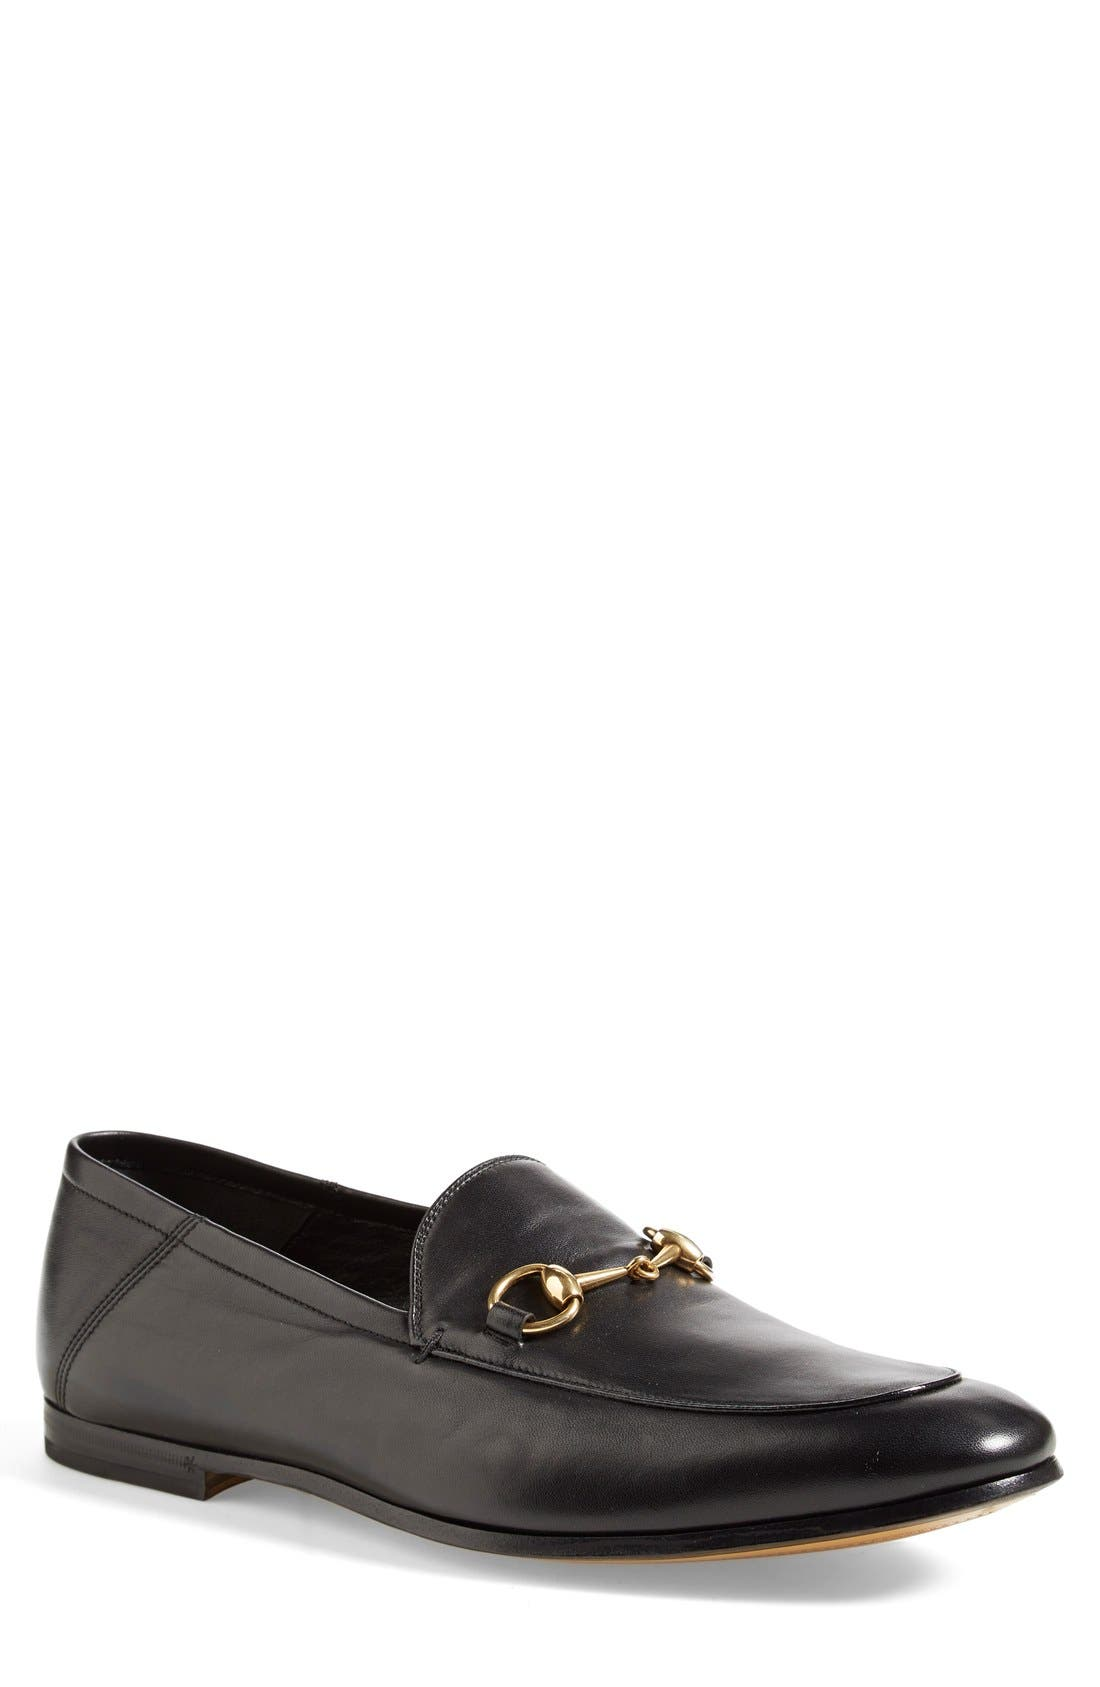 Gucci Brixton Convertible Bit Loafer (Men)